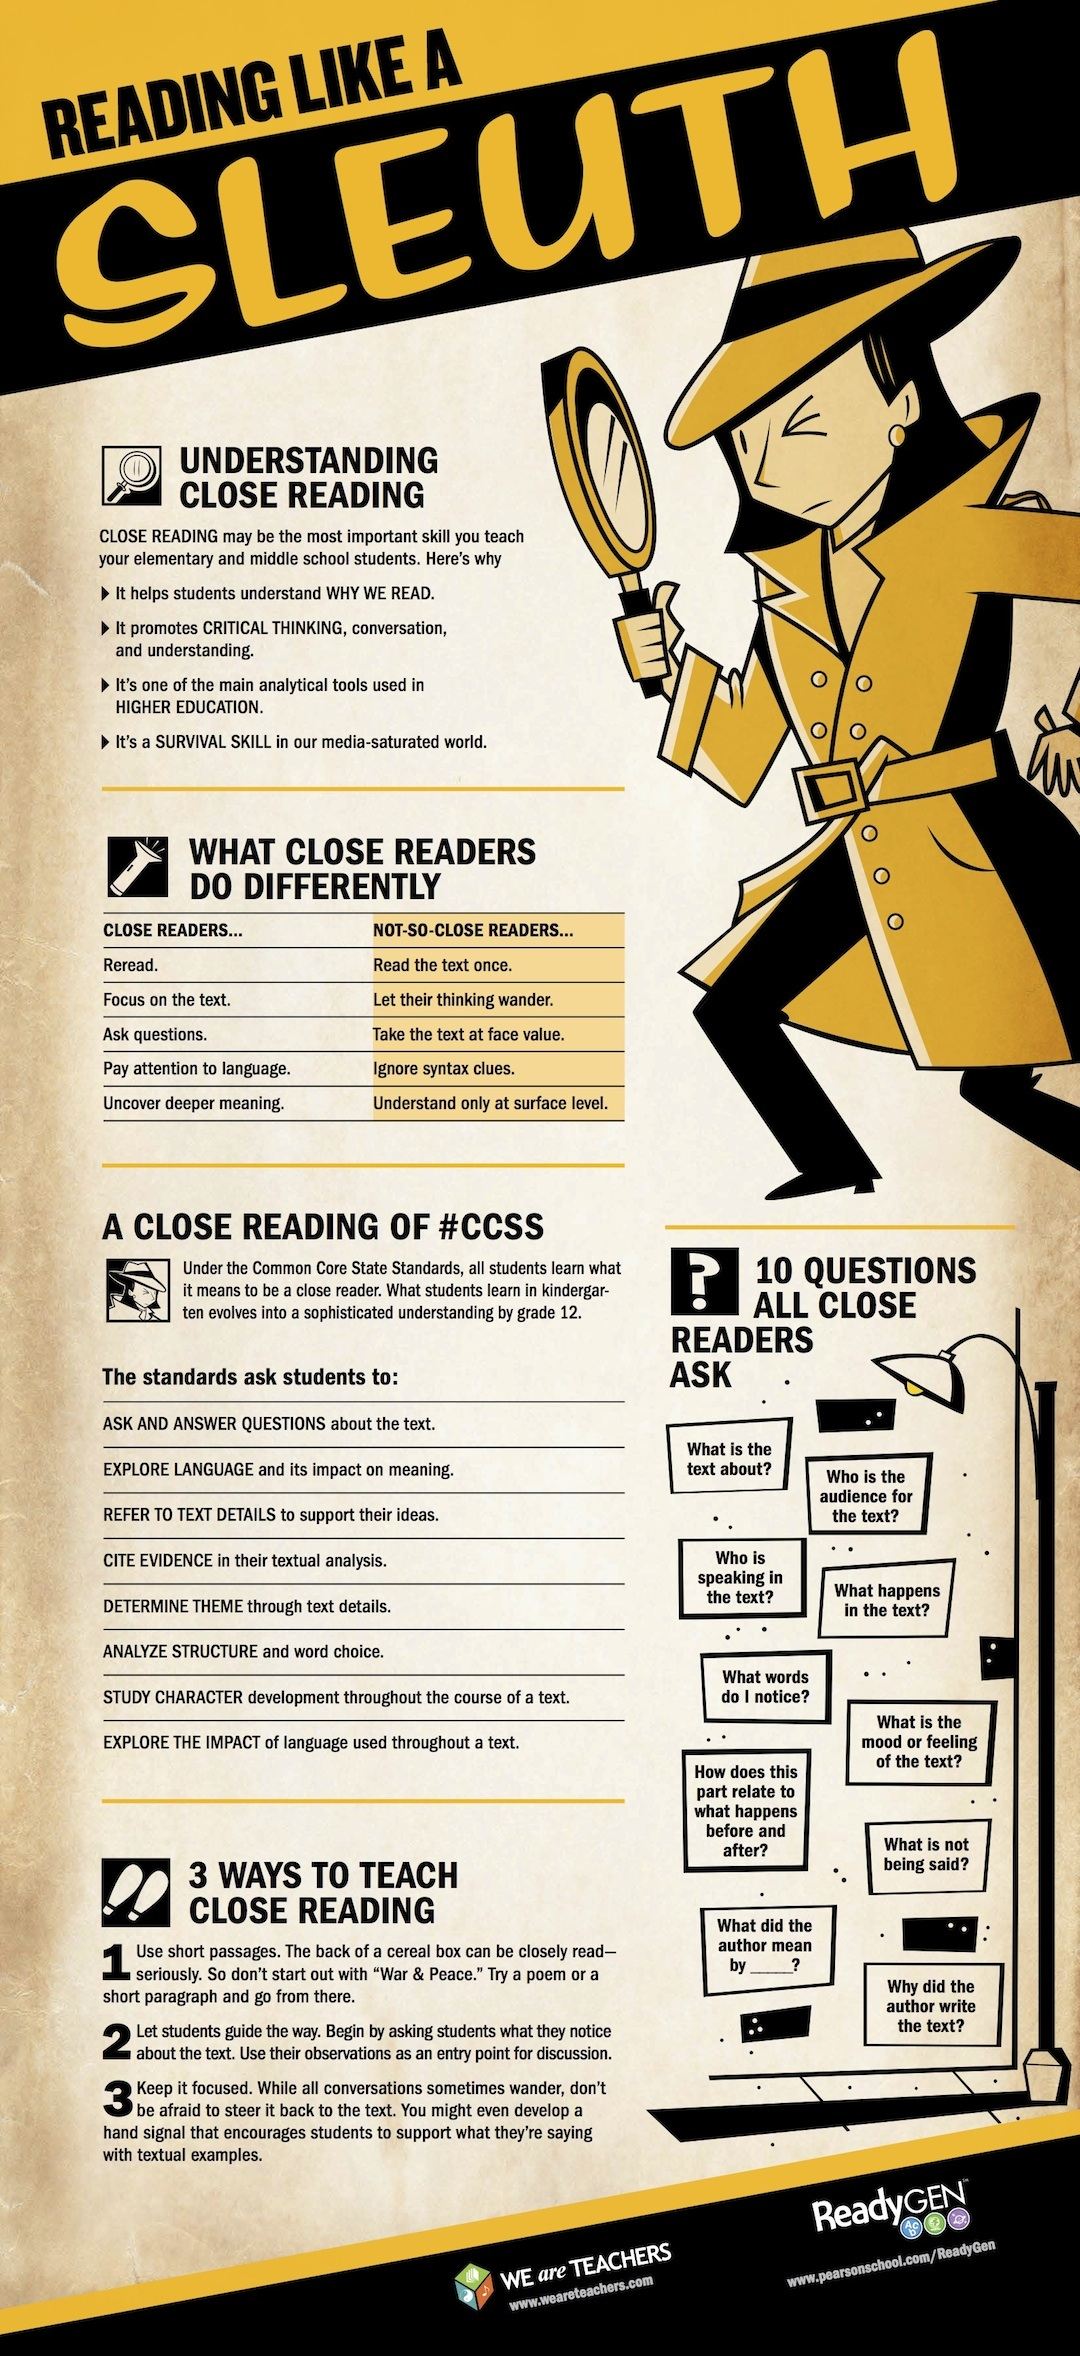 The importance of close reading #infographic